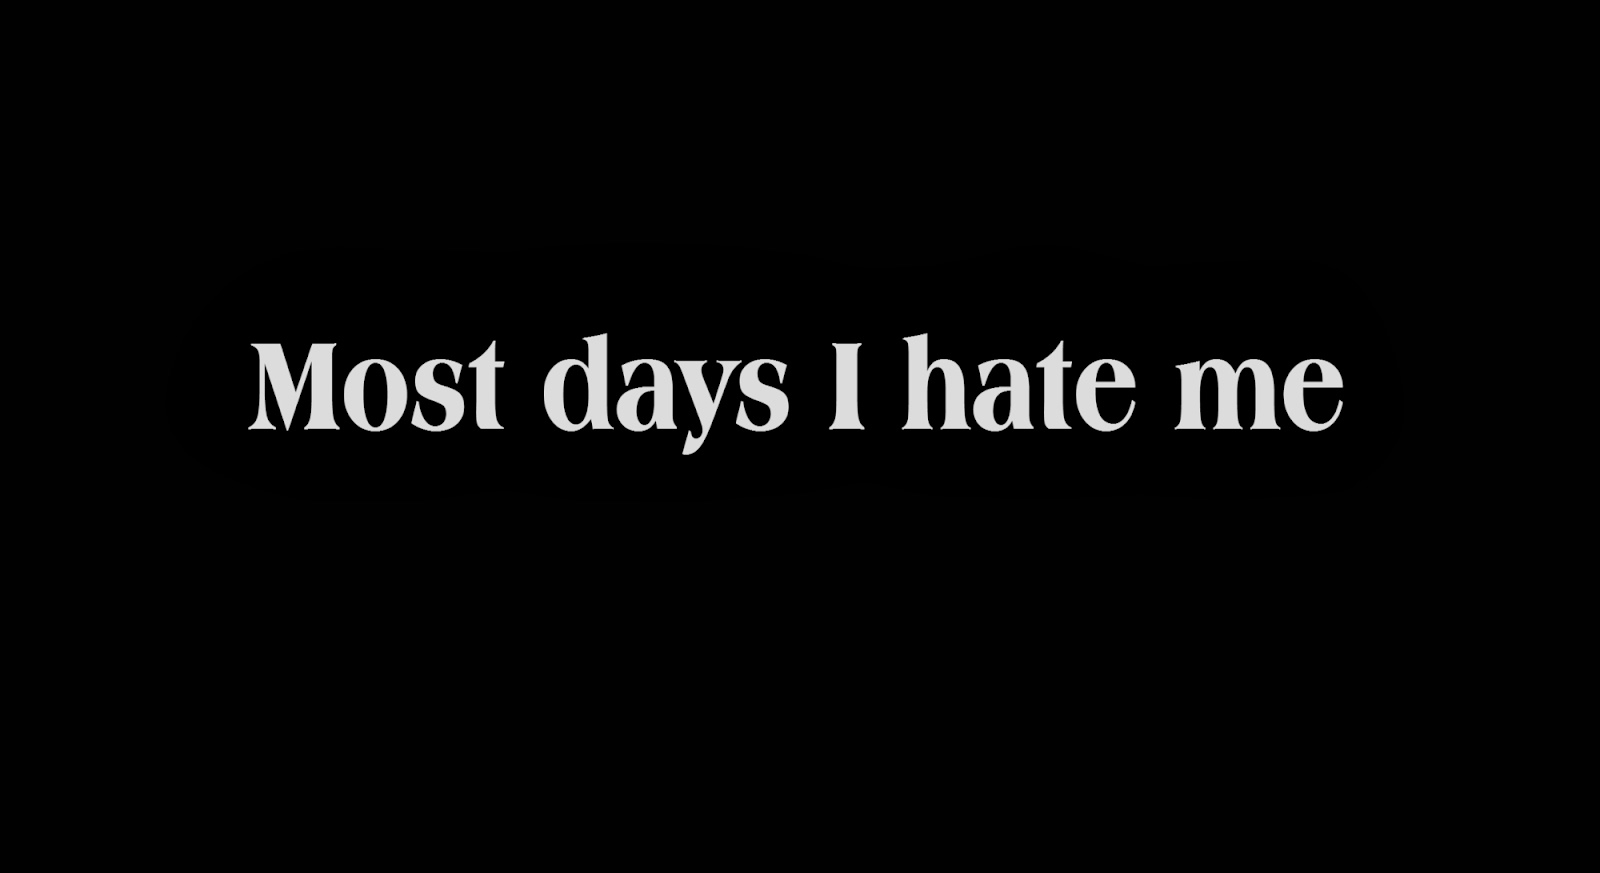 Most days I hate me